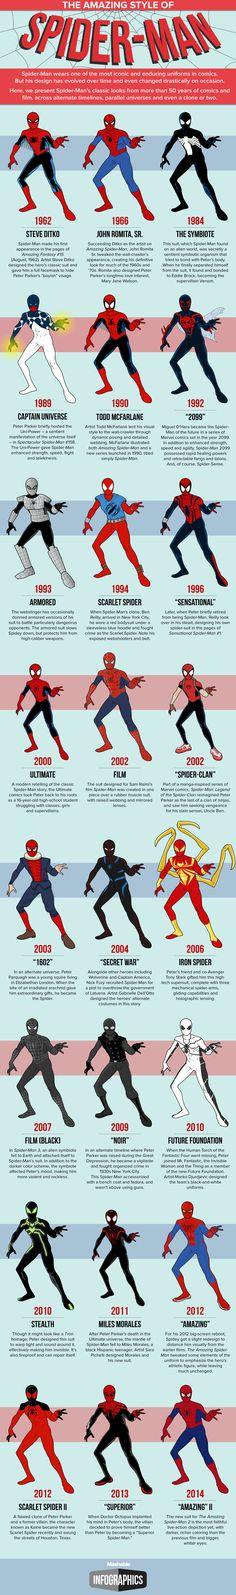 The friendly neighborhood Spider-Man has had his share of costume changes over the years. Here are 24 of his classic outfits.